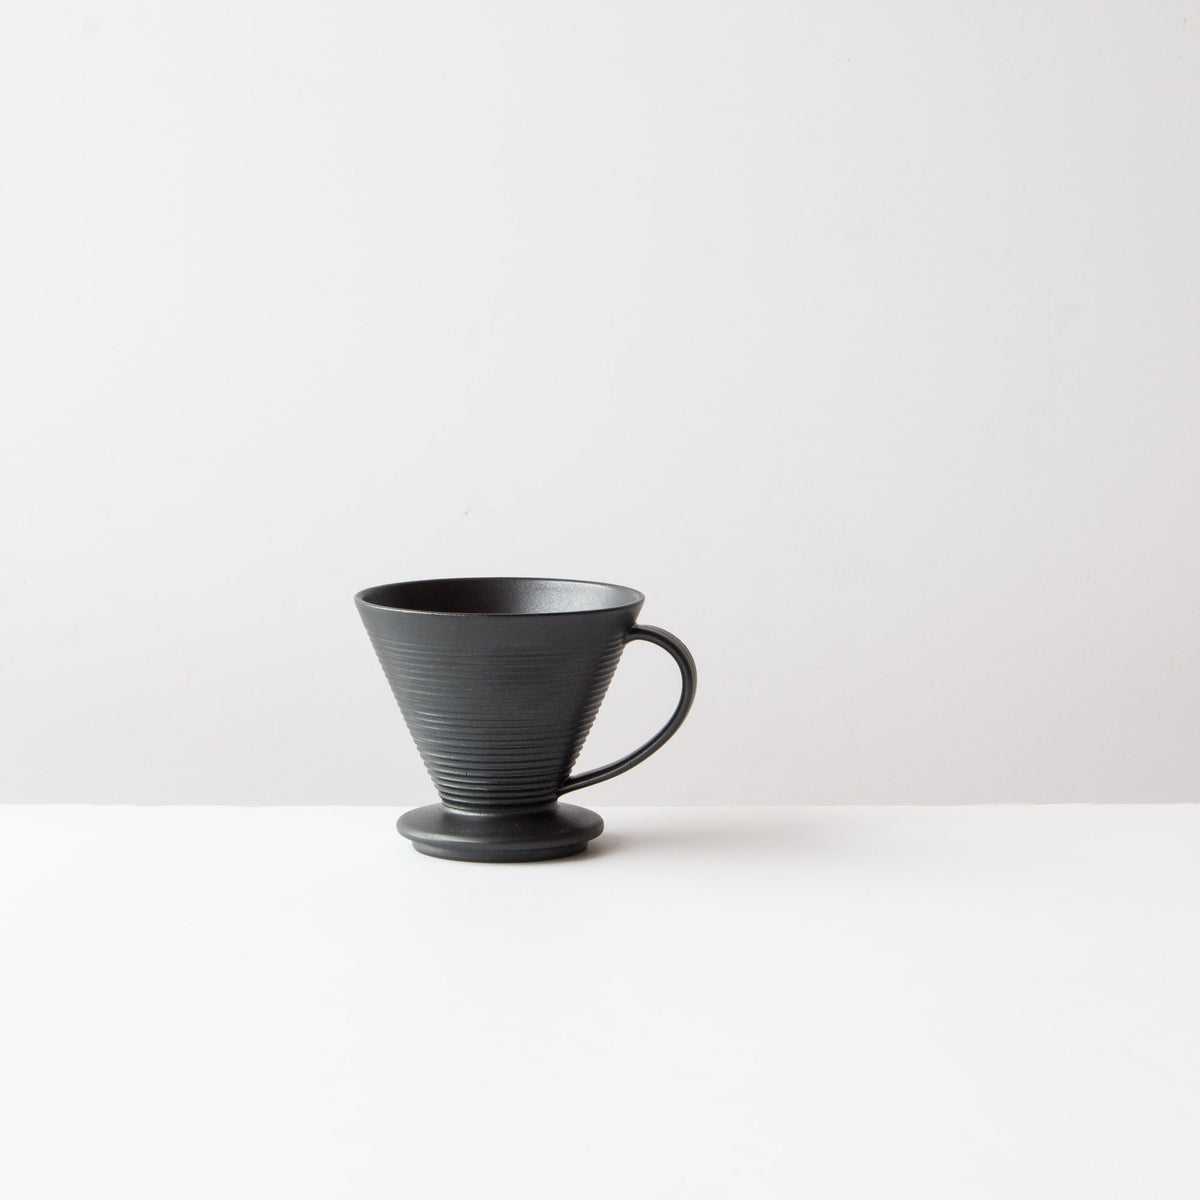 Black Colour - Handmade Ceramic Pour-Over Coffee Dripper - Sold by Chic & Basta